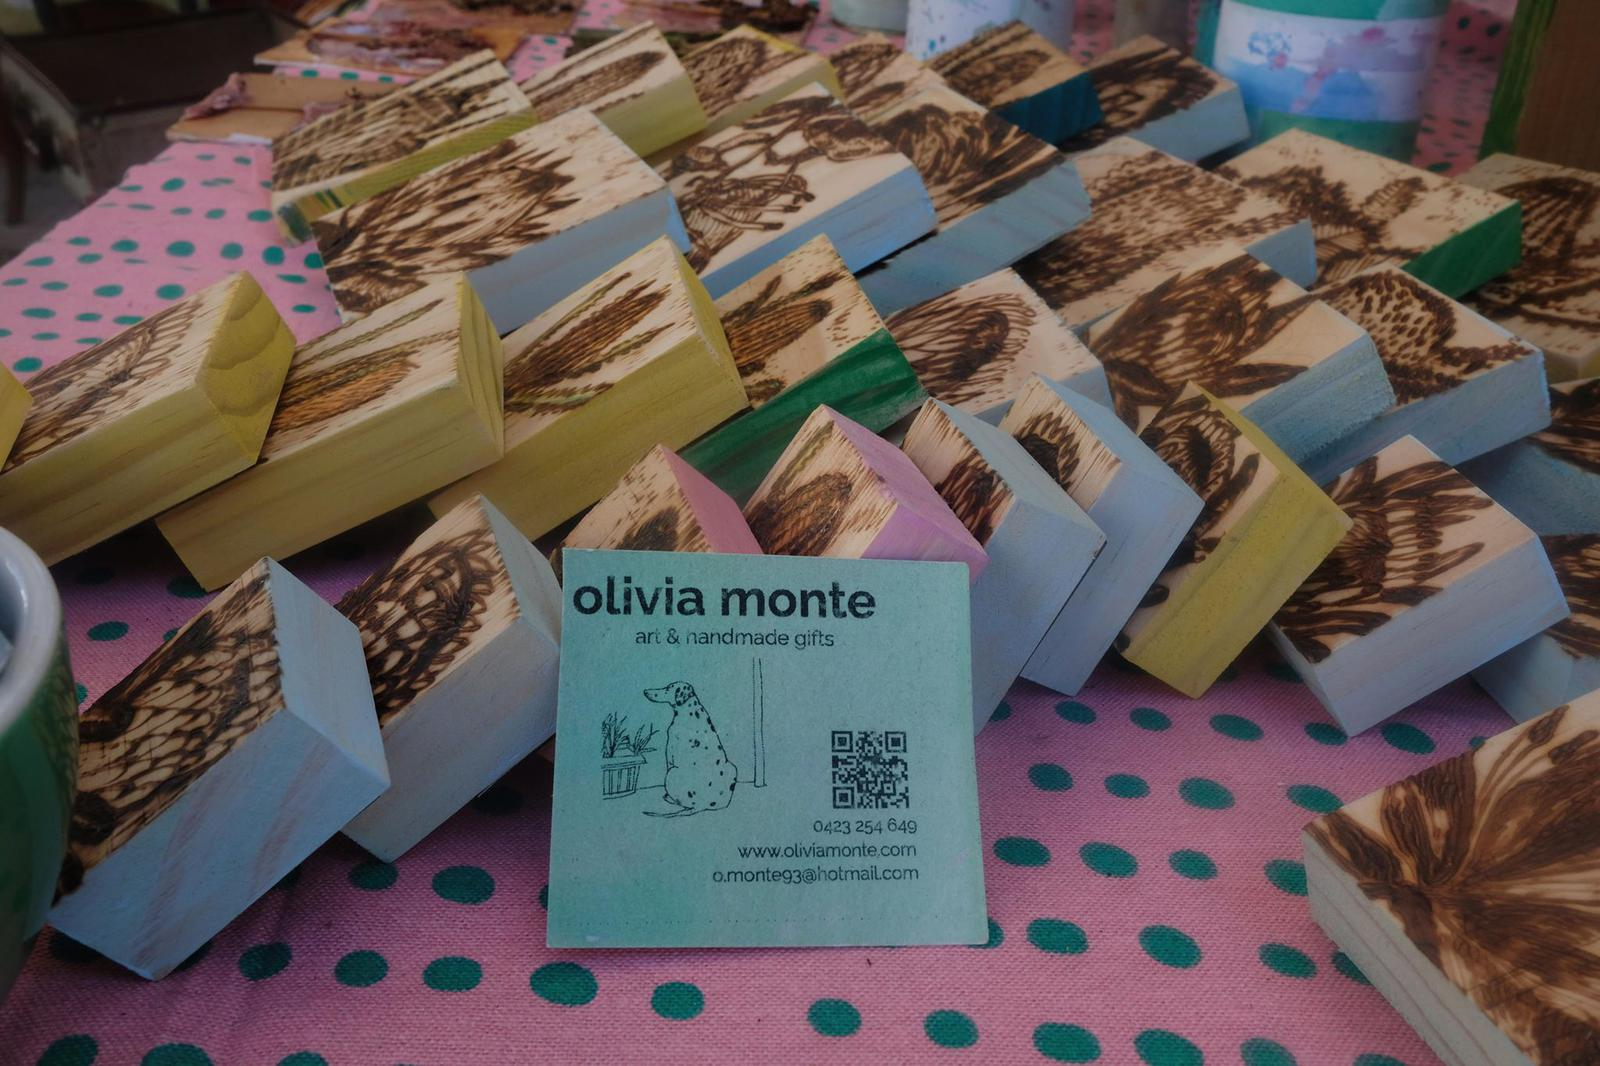 olivia monte products and business cards